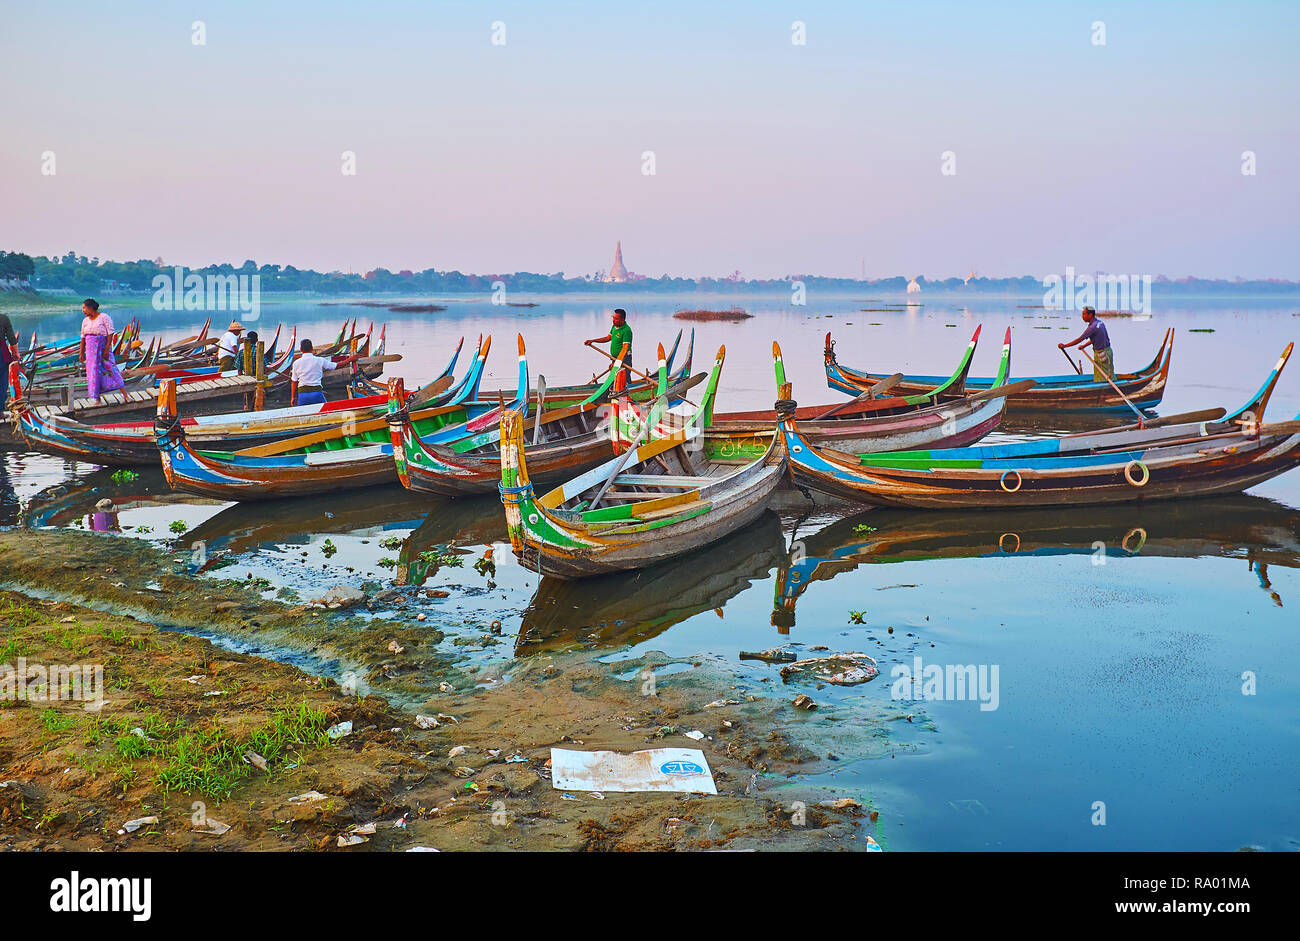 AMARAPURA, MYANMAR - FEBRUARY 21, 2018: The colorful wooden canoes weit the tourists in port on Taungthaman Lake and offers sunset trip to U Bein Brid - Stock Image